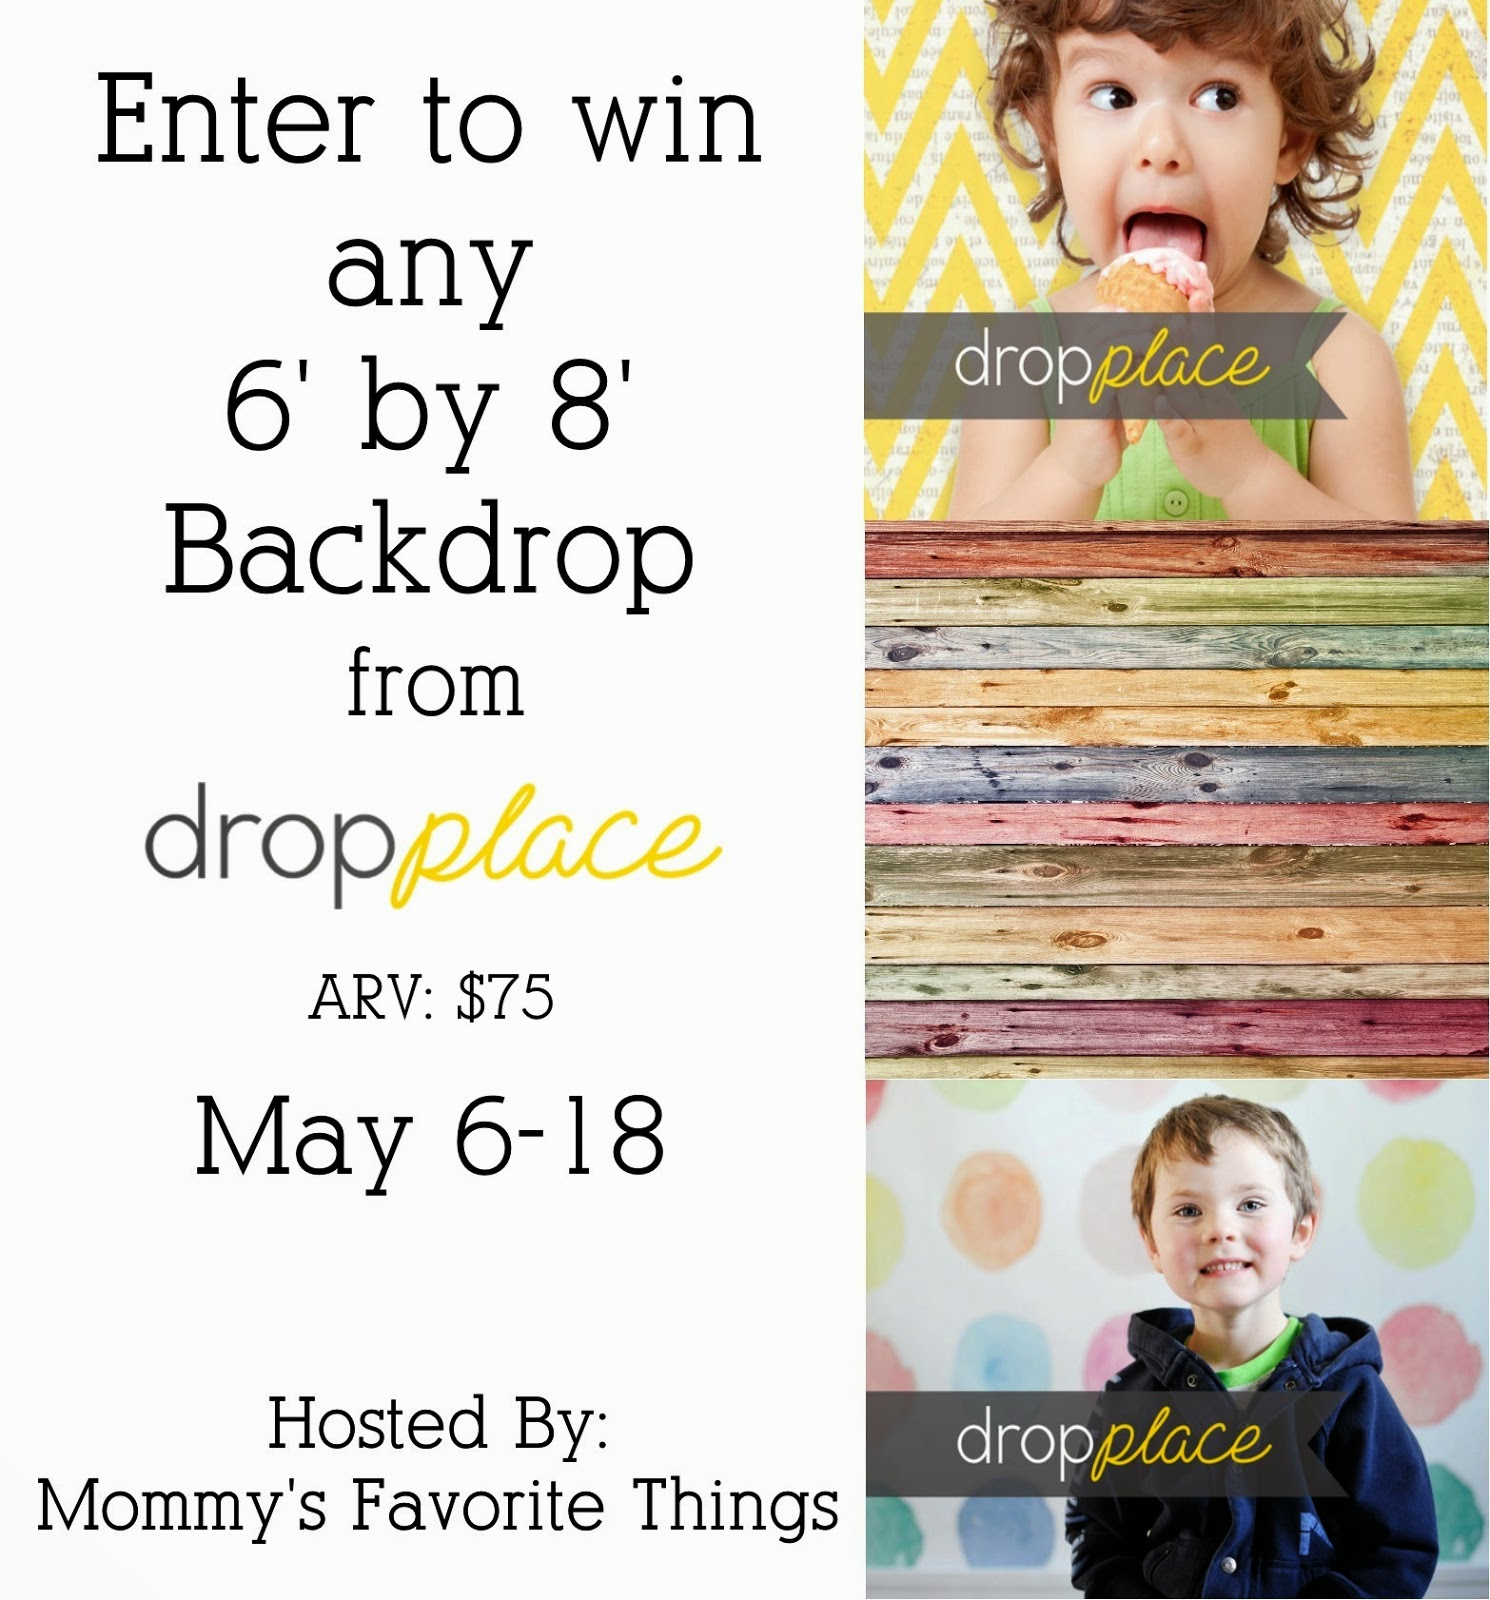 Enter the dropplace Backdrop Giveaway. Ends 5/18